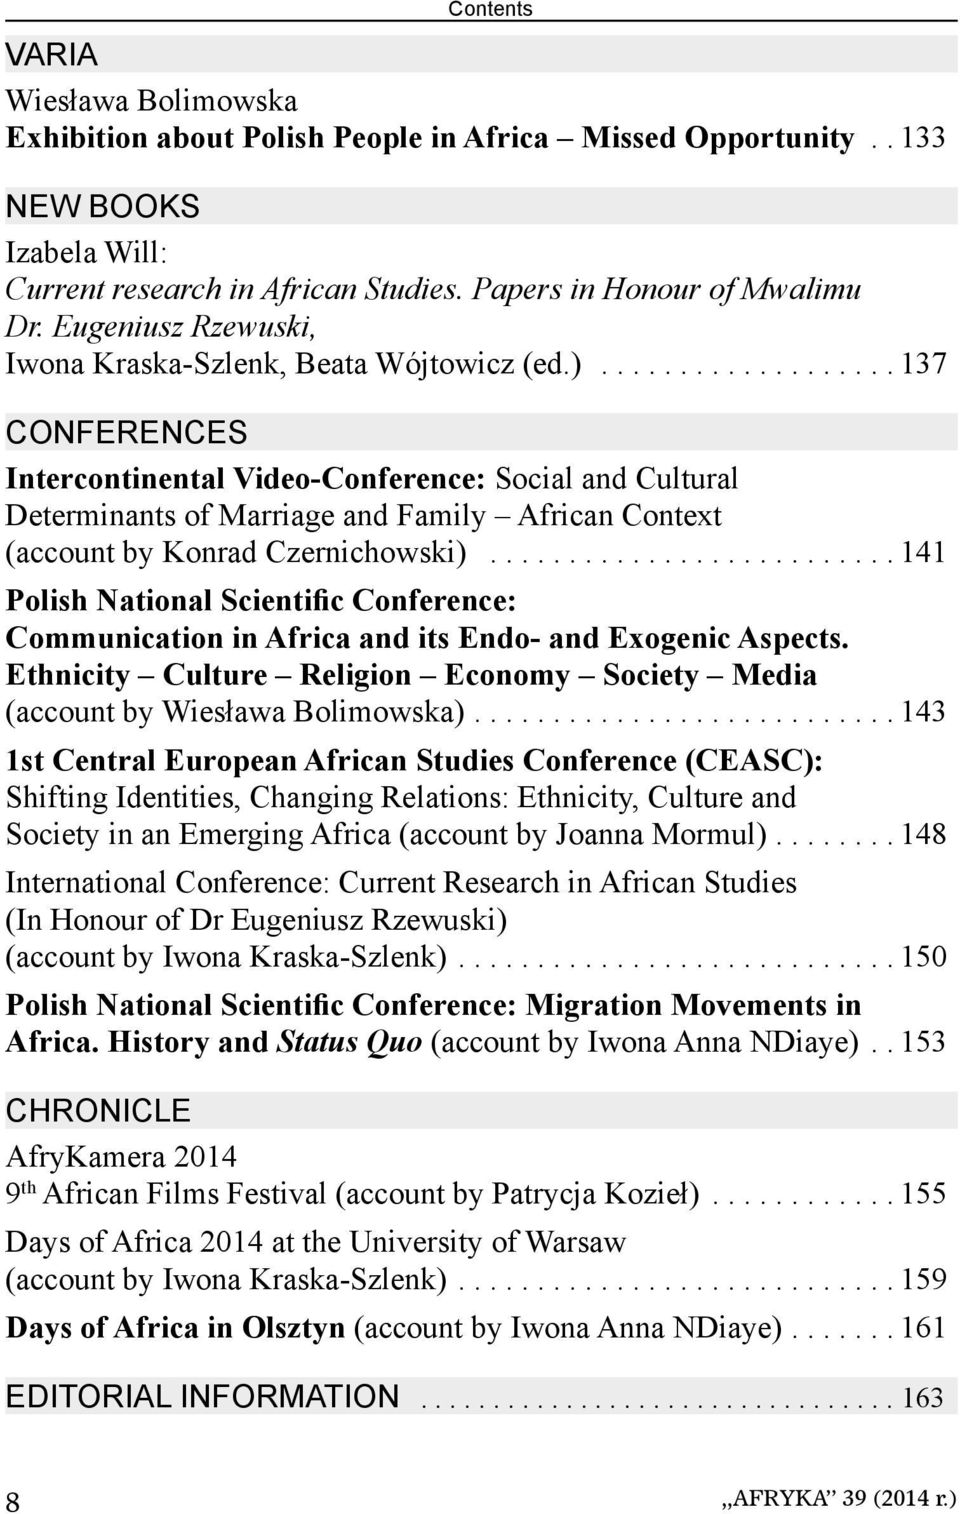 .................. 137 CONFERENCES Intercontinental Video-Conference: Social and Cultural Determinants of Marriage and Family African Context (account by Konrad Czernichowski).